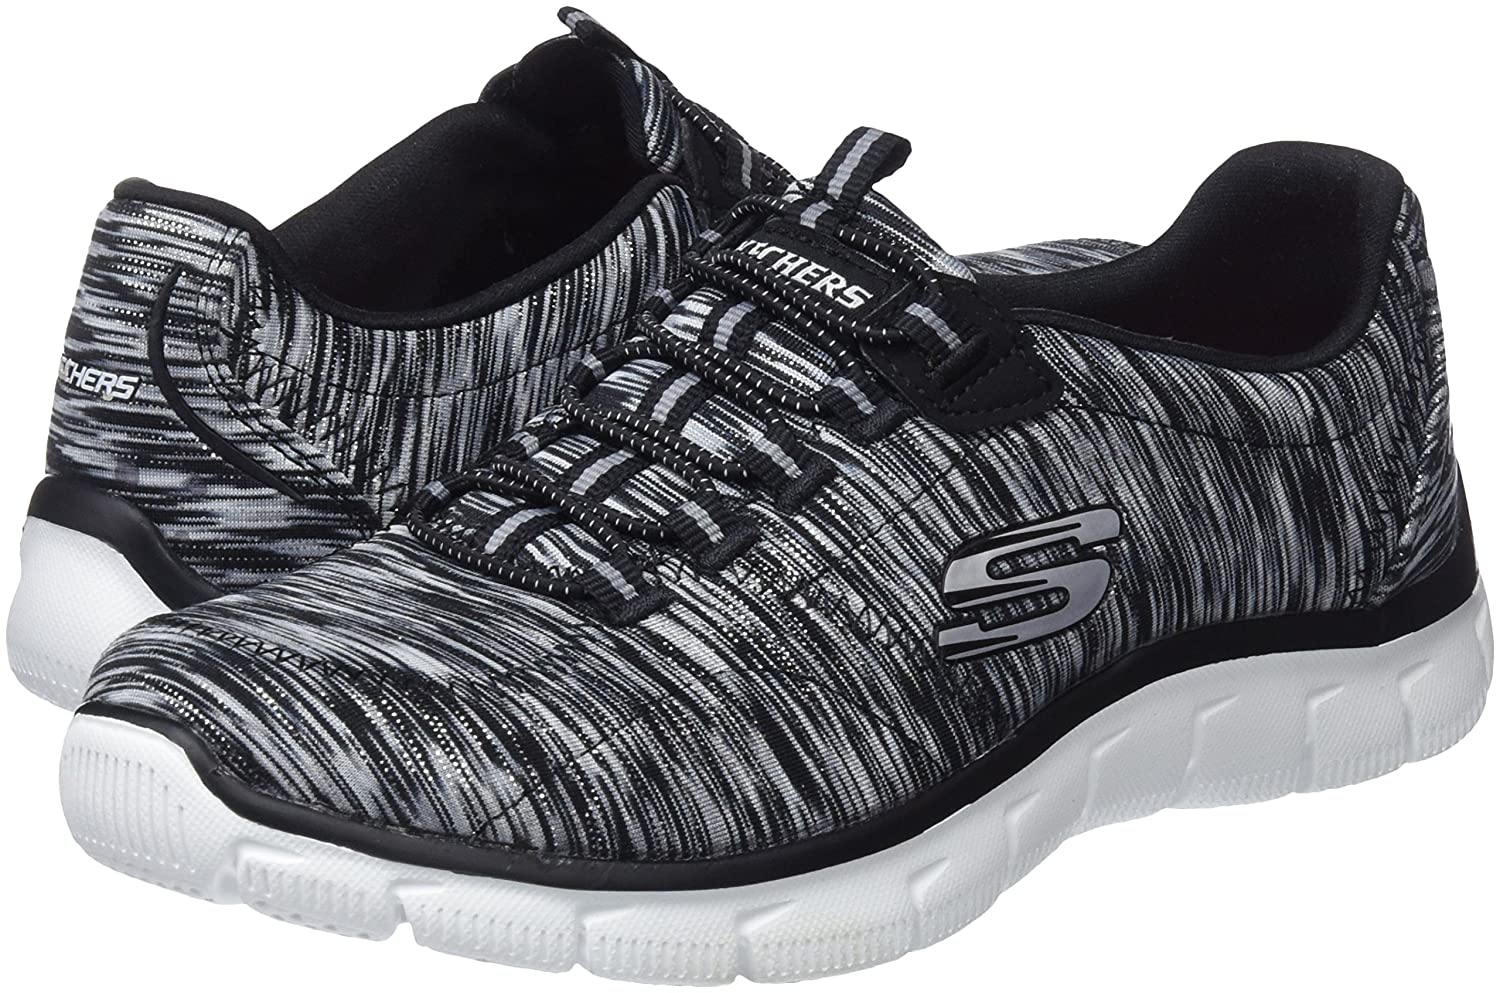 Skechers Relaxed Fit Empire Game On Slip On Sneaker